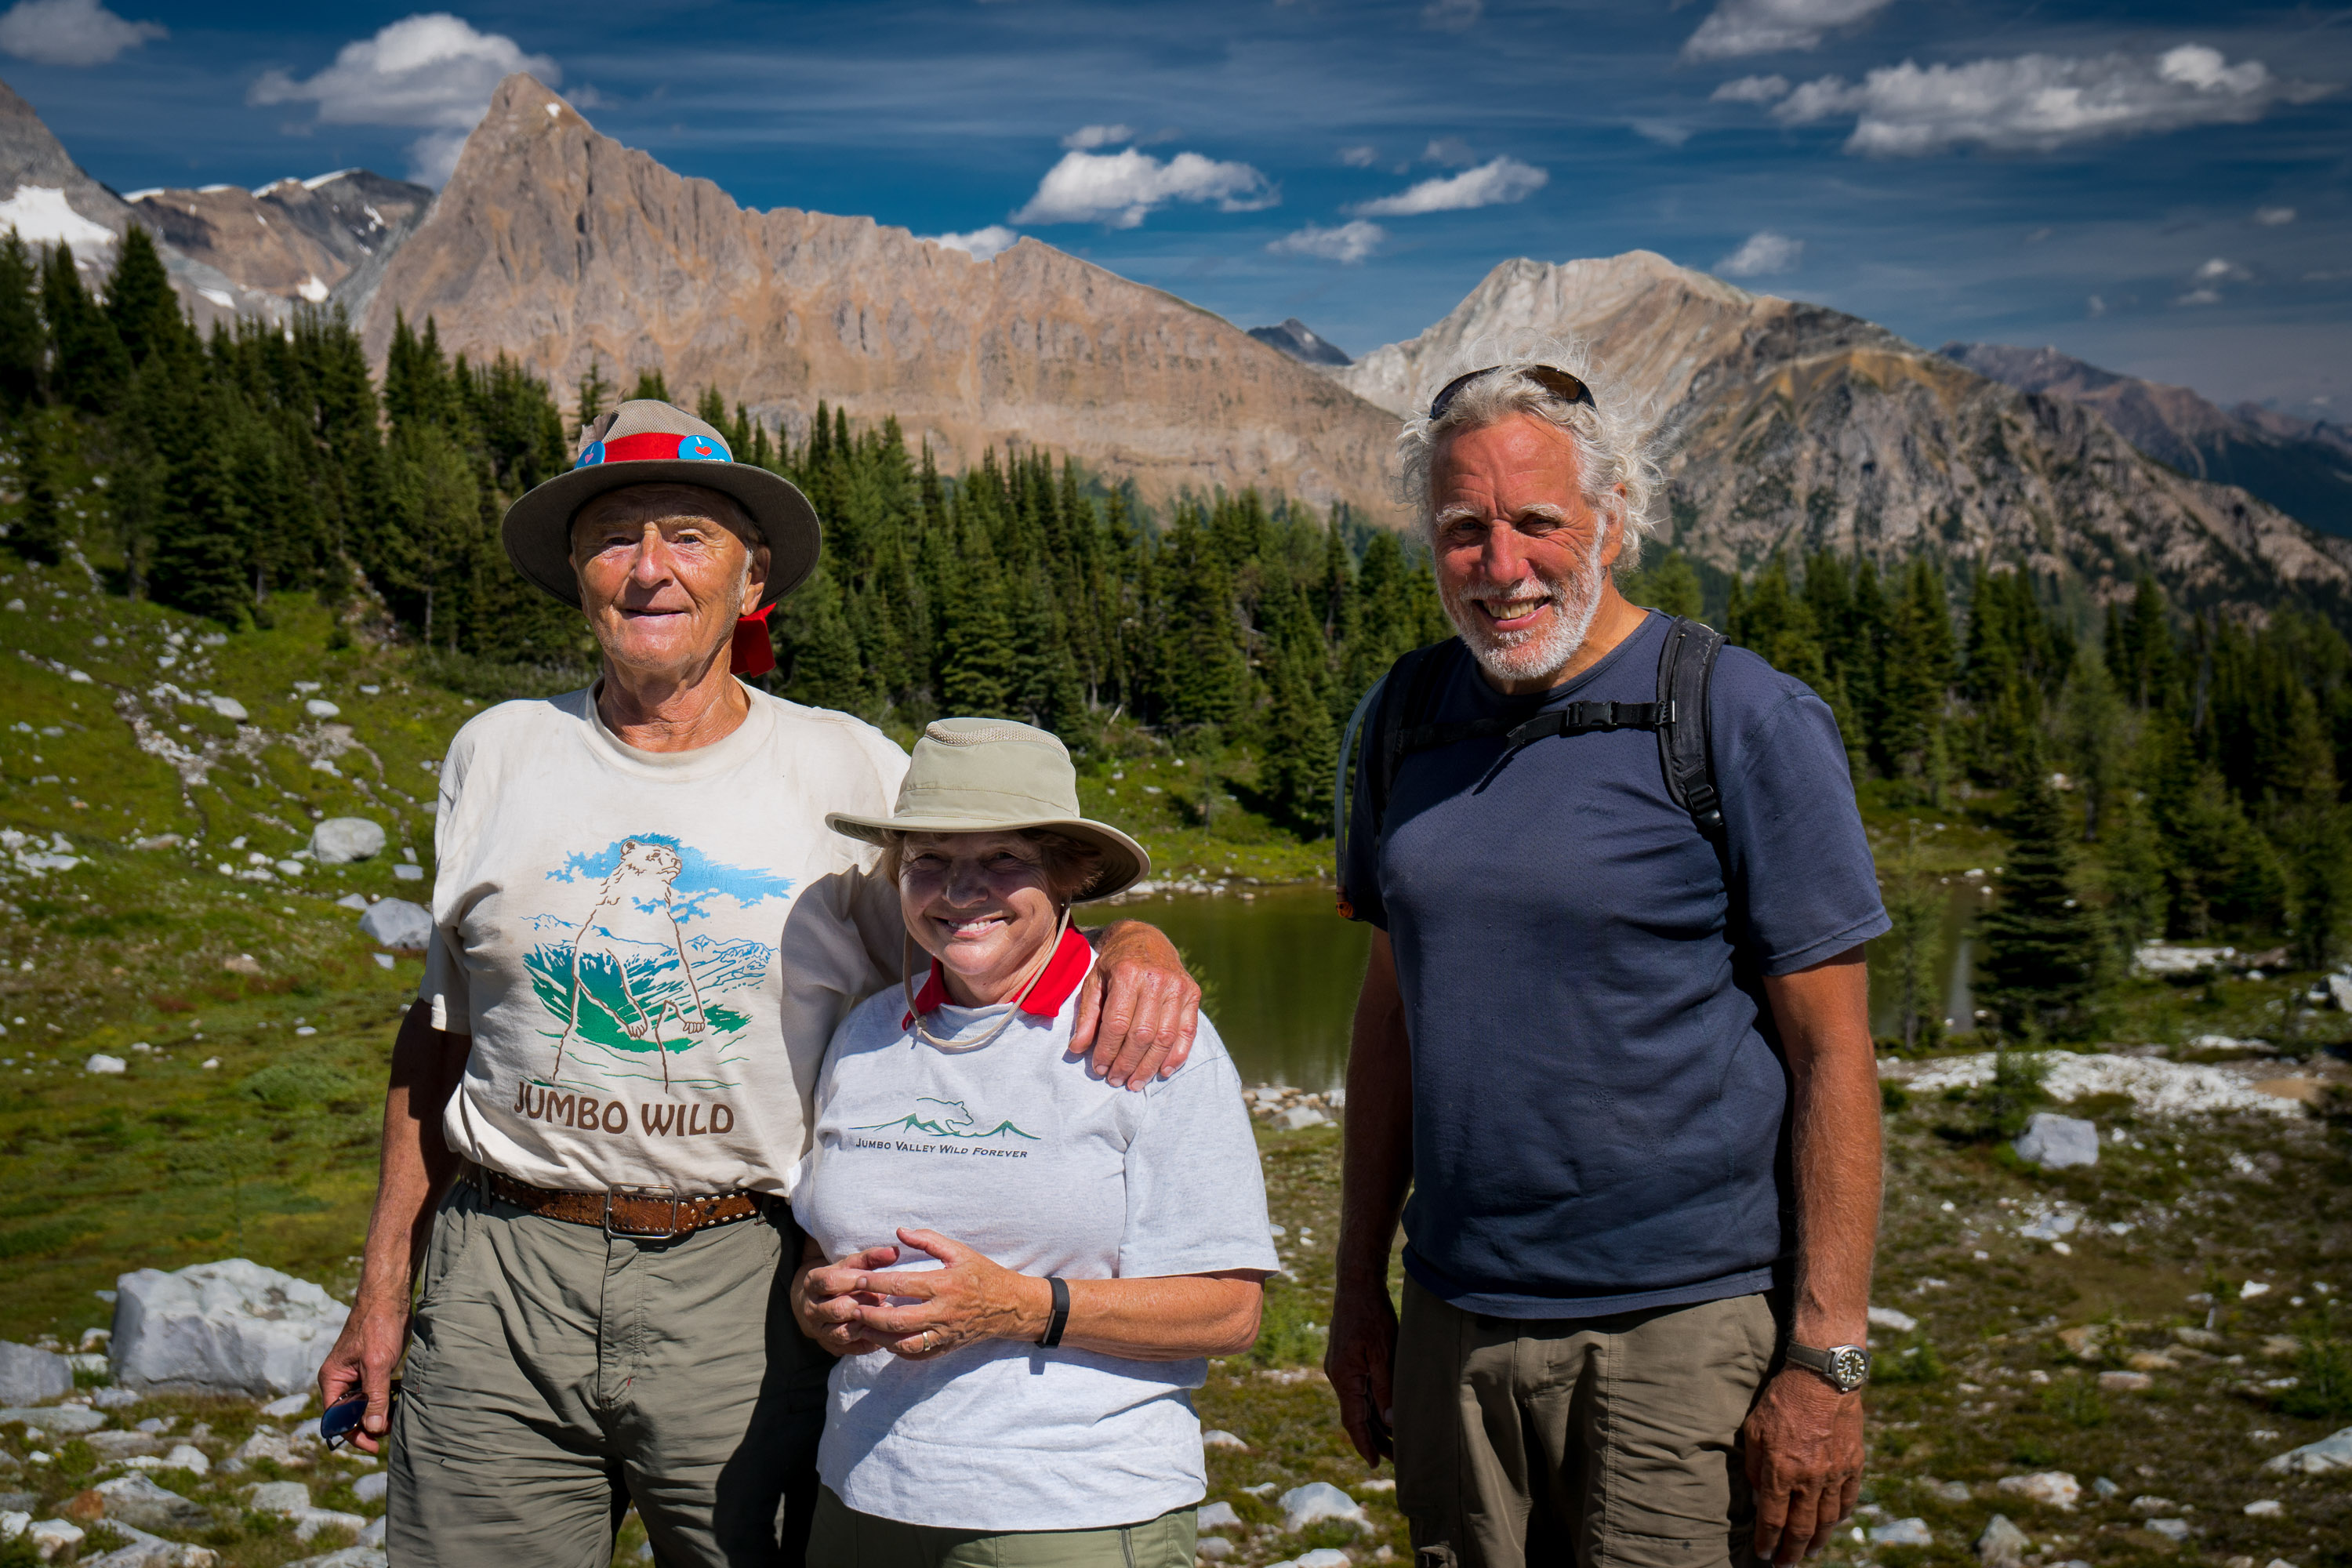 Bob and Lorraine Campsall, and John Bergenske, 2016 East-West hike to Jumbo Pass, (in Qatmuk, sacred valley of the grizzly bear spirit) by members of Wildsight, Jumbo Creek Conservation Society, Ktunaxa Nation and Keep Jumbo Wild supporters from both East and West Kootenays.